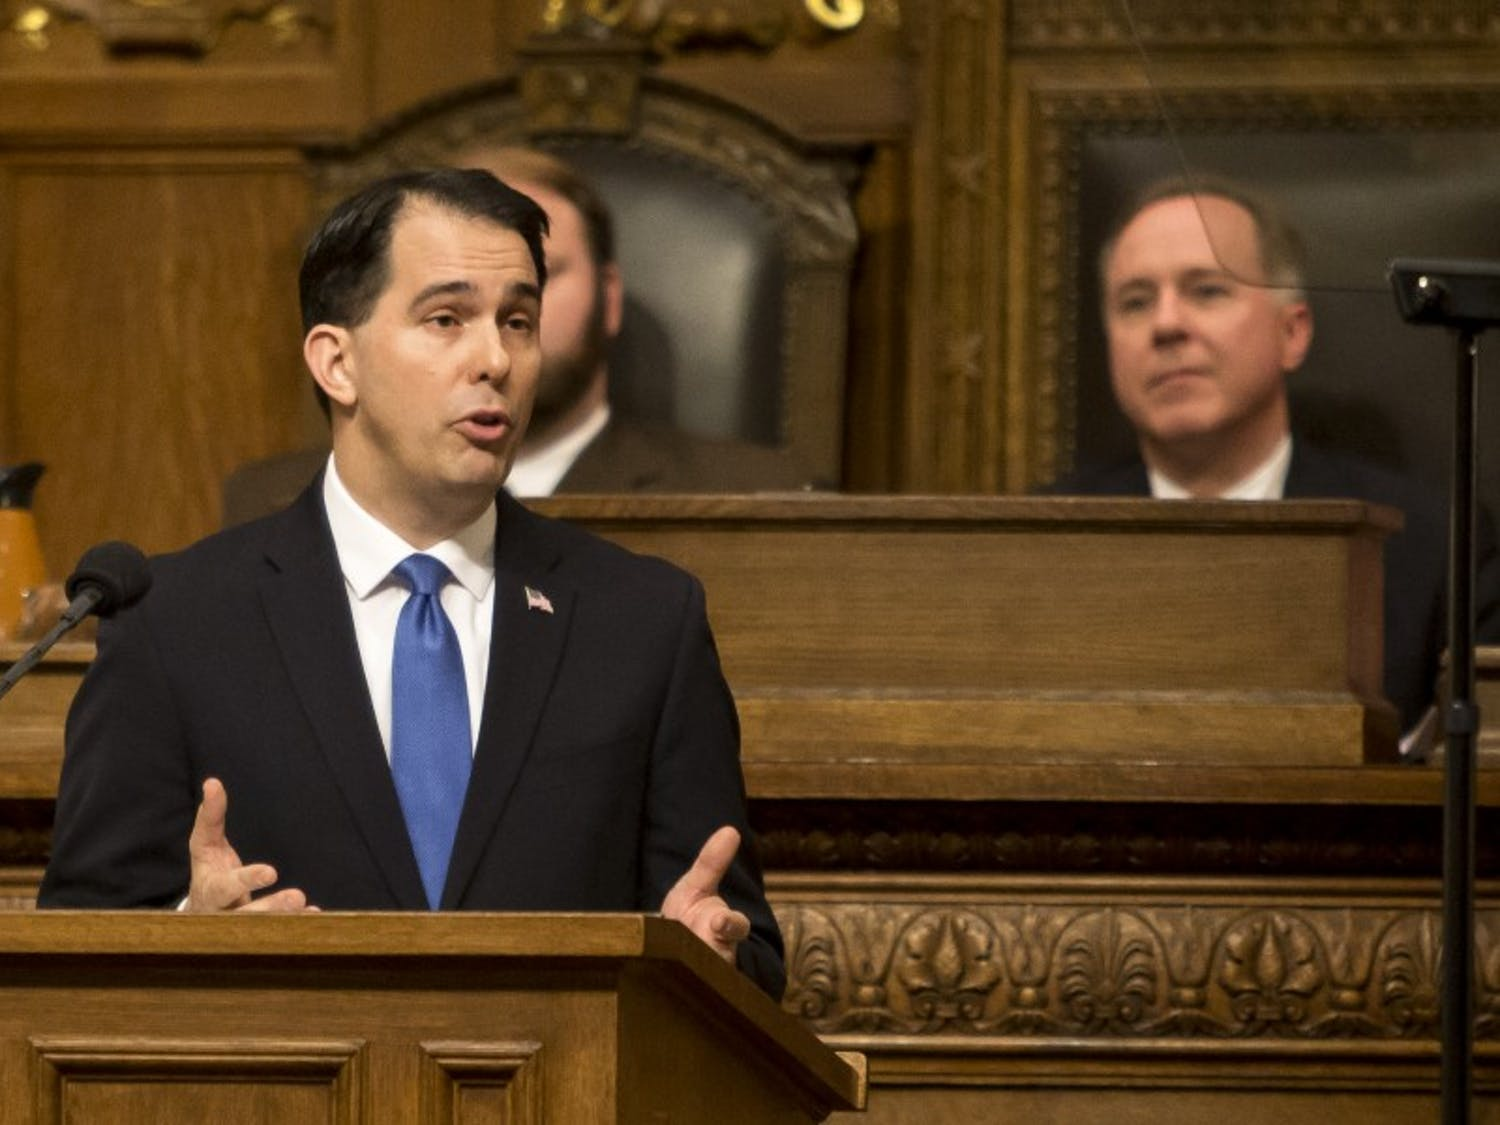 Wisconsin Gov. Scott Walker has indicated that he will push to continue the in-state tuition freeze at UW System schools in the next state budget.